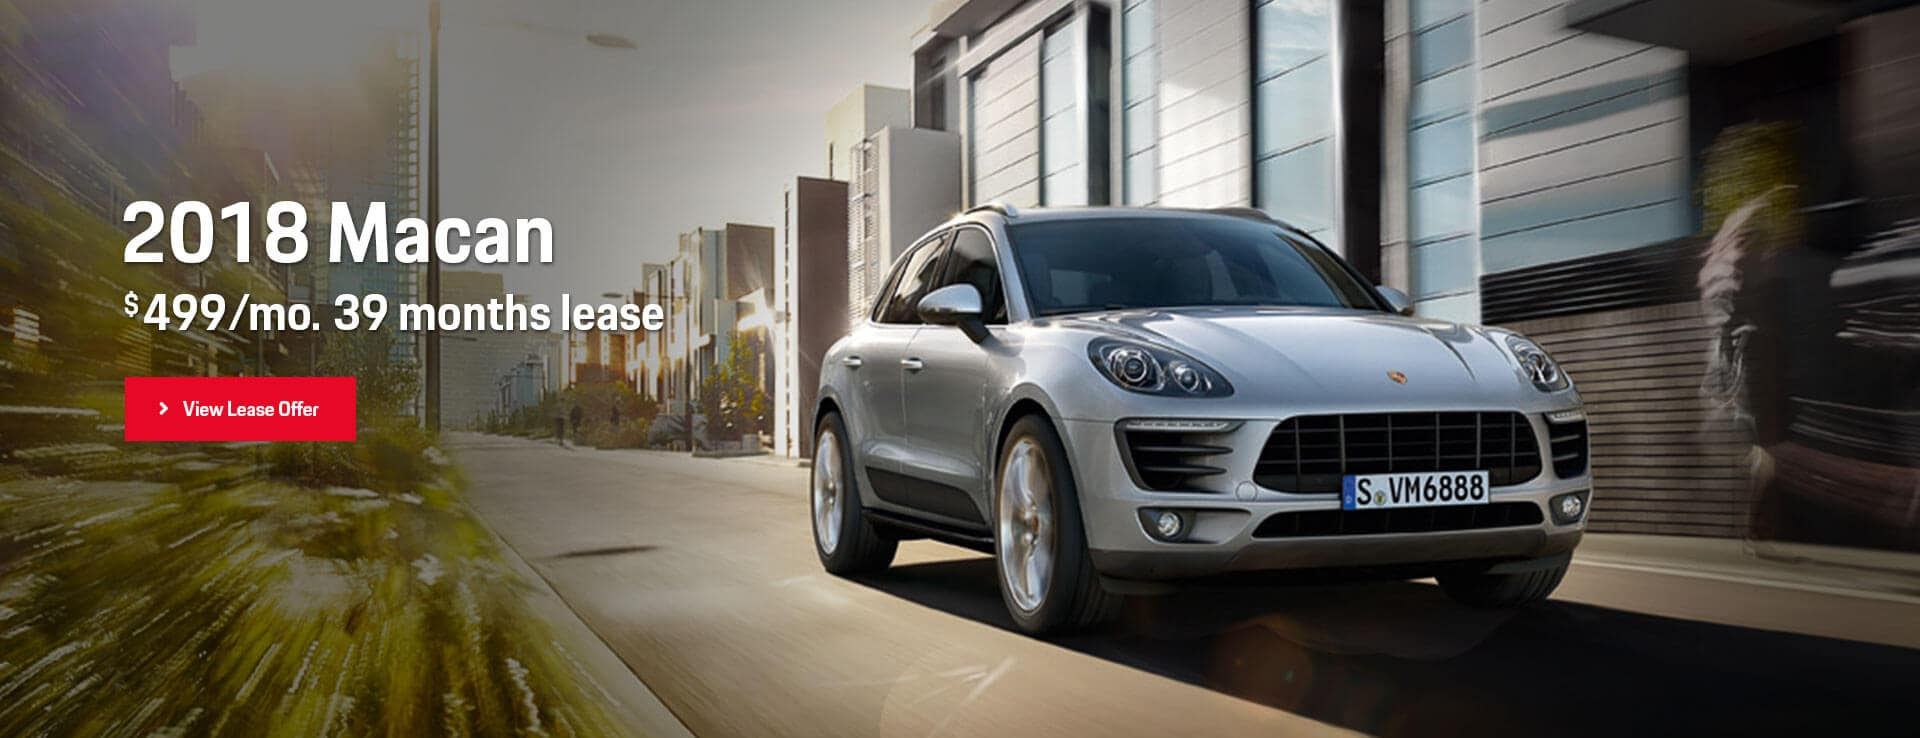 Porsche Macan Lease Offer Hero